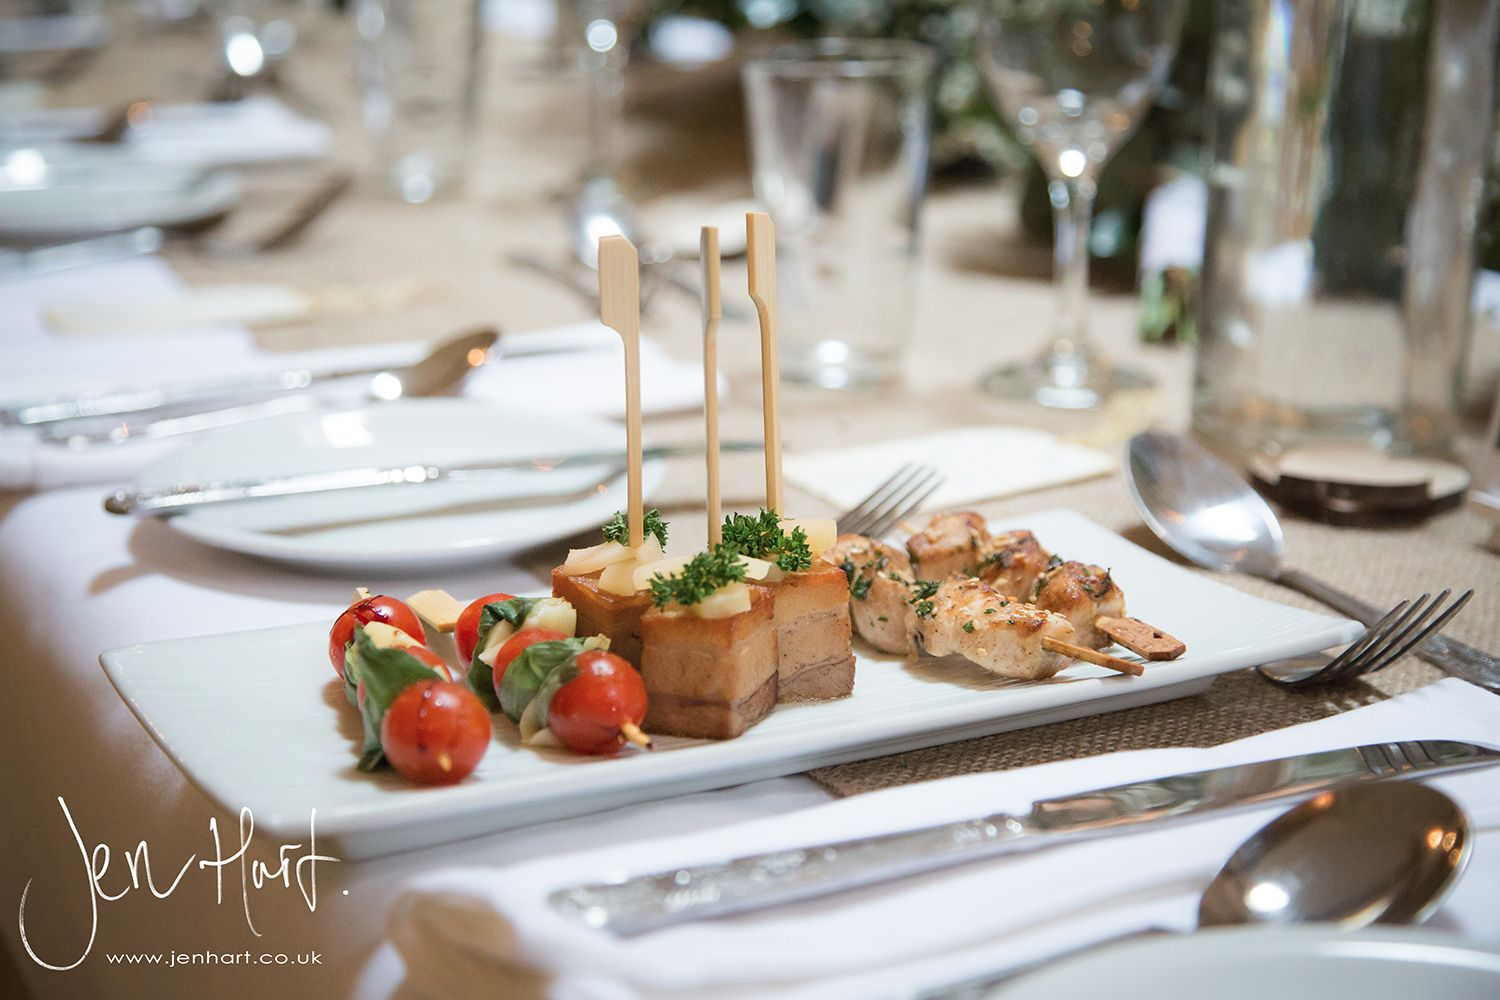 Photograph-Wedding-Whinstone-View_02May15_180